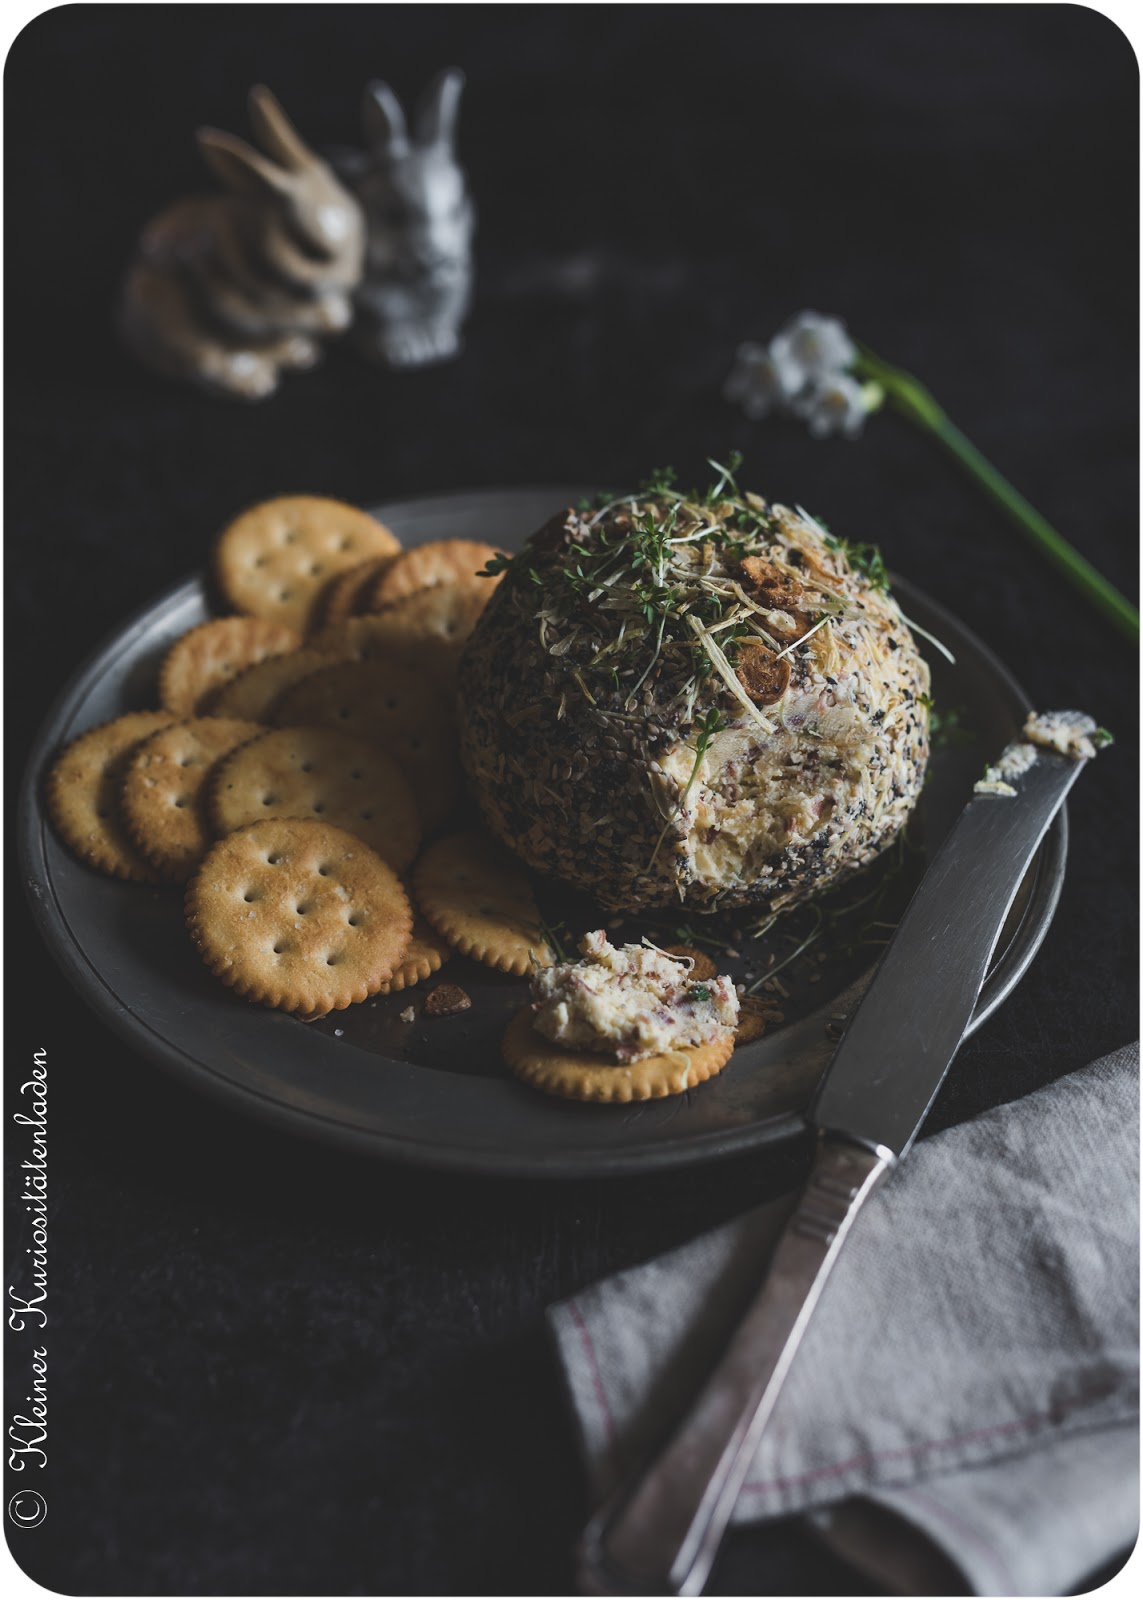 Cheddar Cheese Ball | Cheddar-Frischkäse-Ball